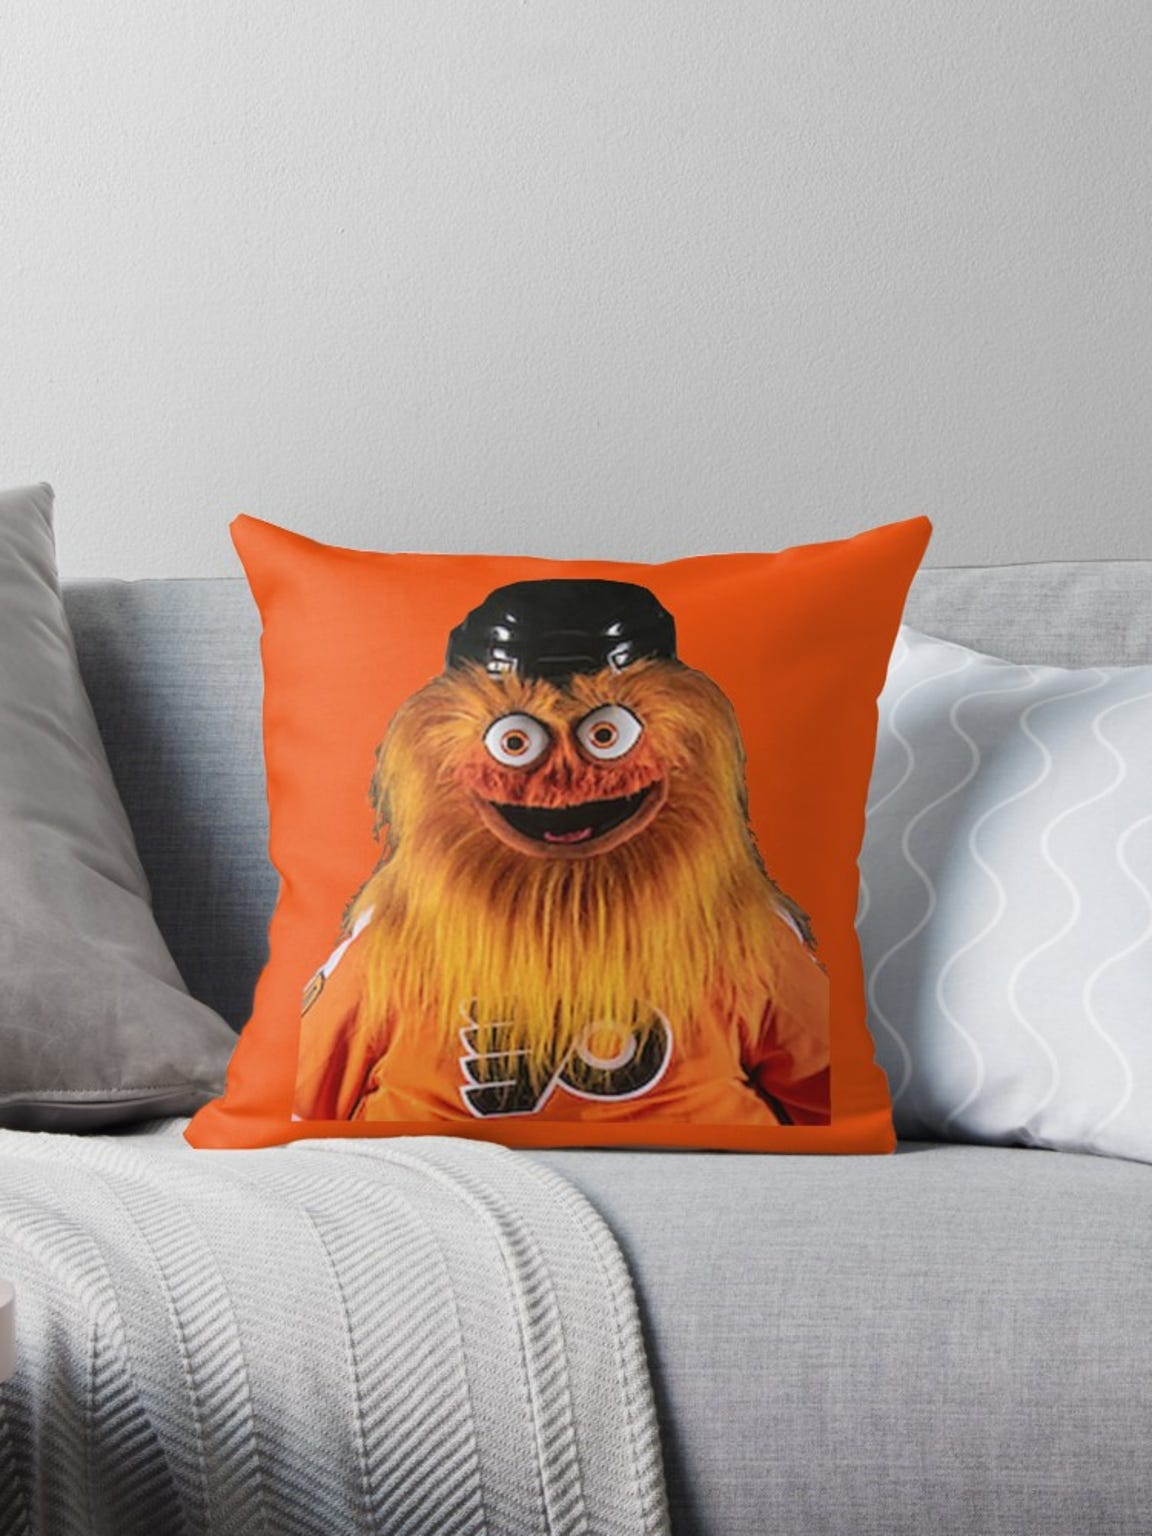 Get this Gritty pillow on Redbubble.com